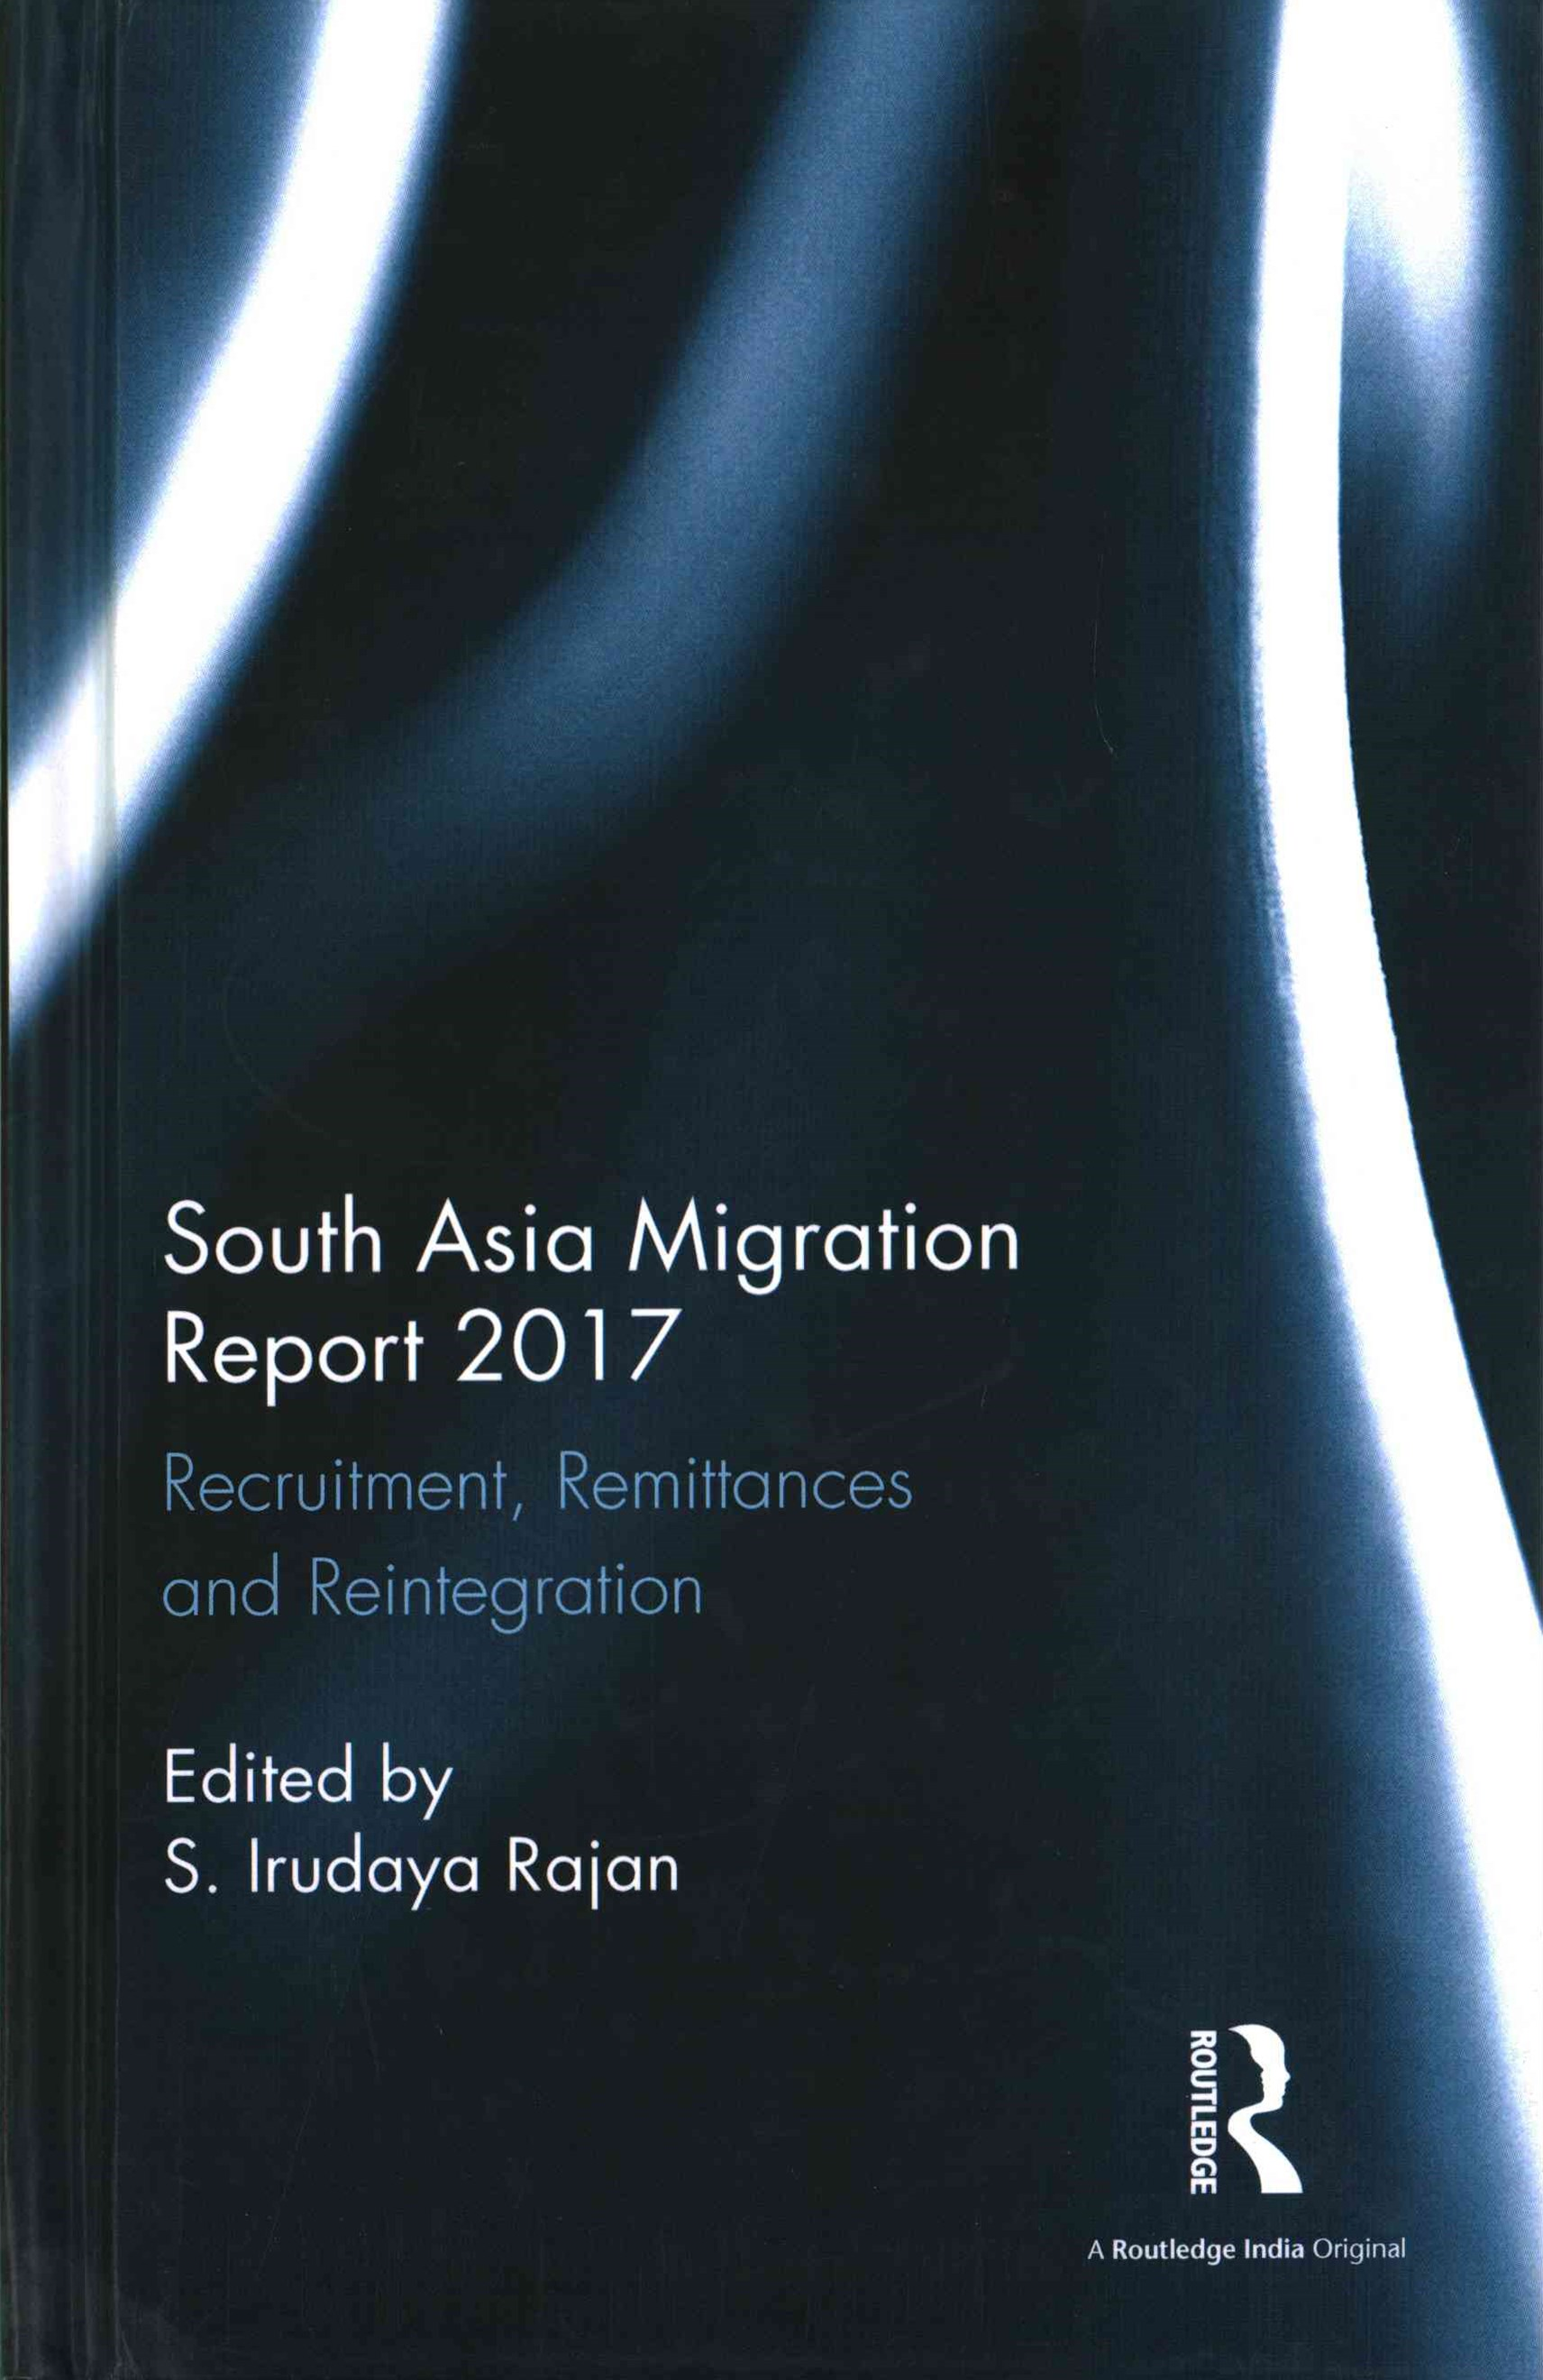 South Asia Migration Report 2017